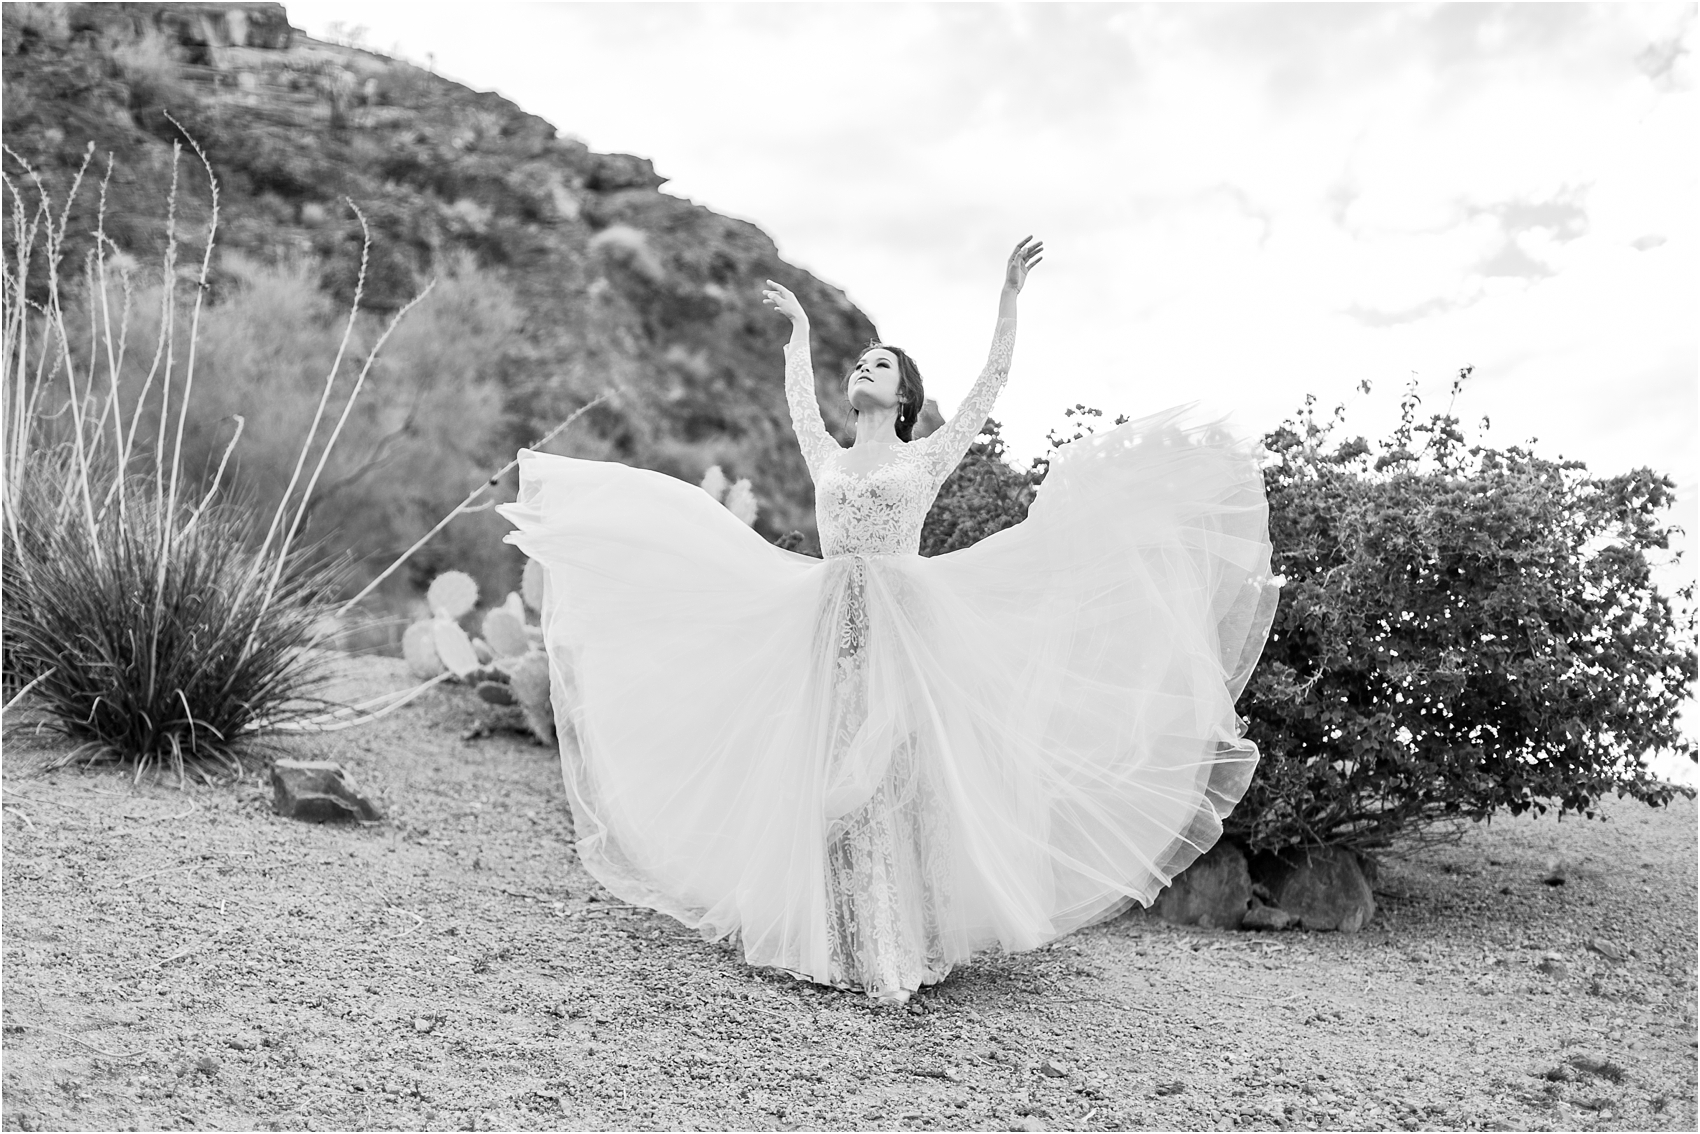 paris-and-ballerina-inspired-bride-wedding-photos-at-phoenix-marriott-tempe-at-the-buttes-in-tempe-arizona-by-courtney-carolyn-photography_0006.jpg